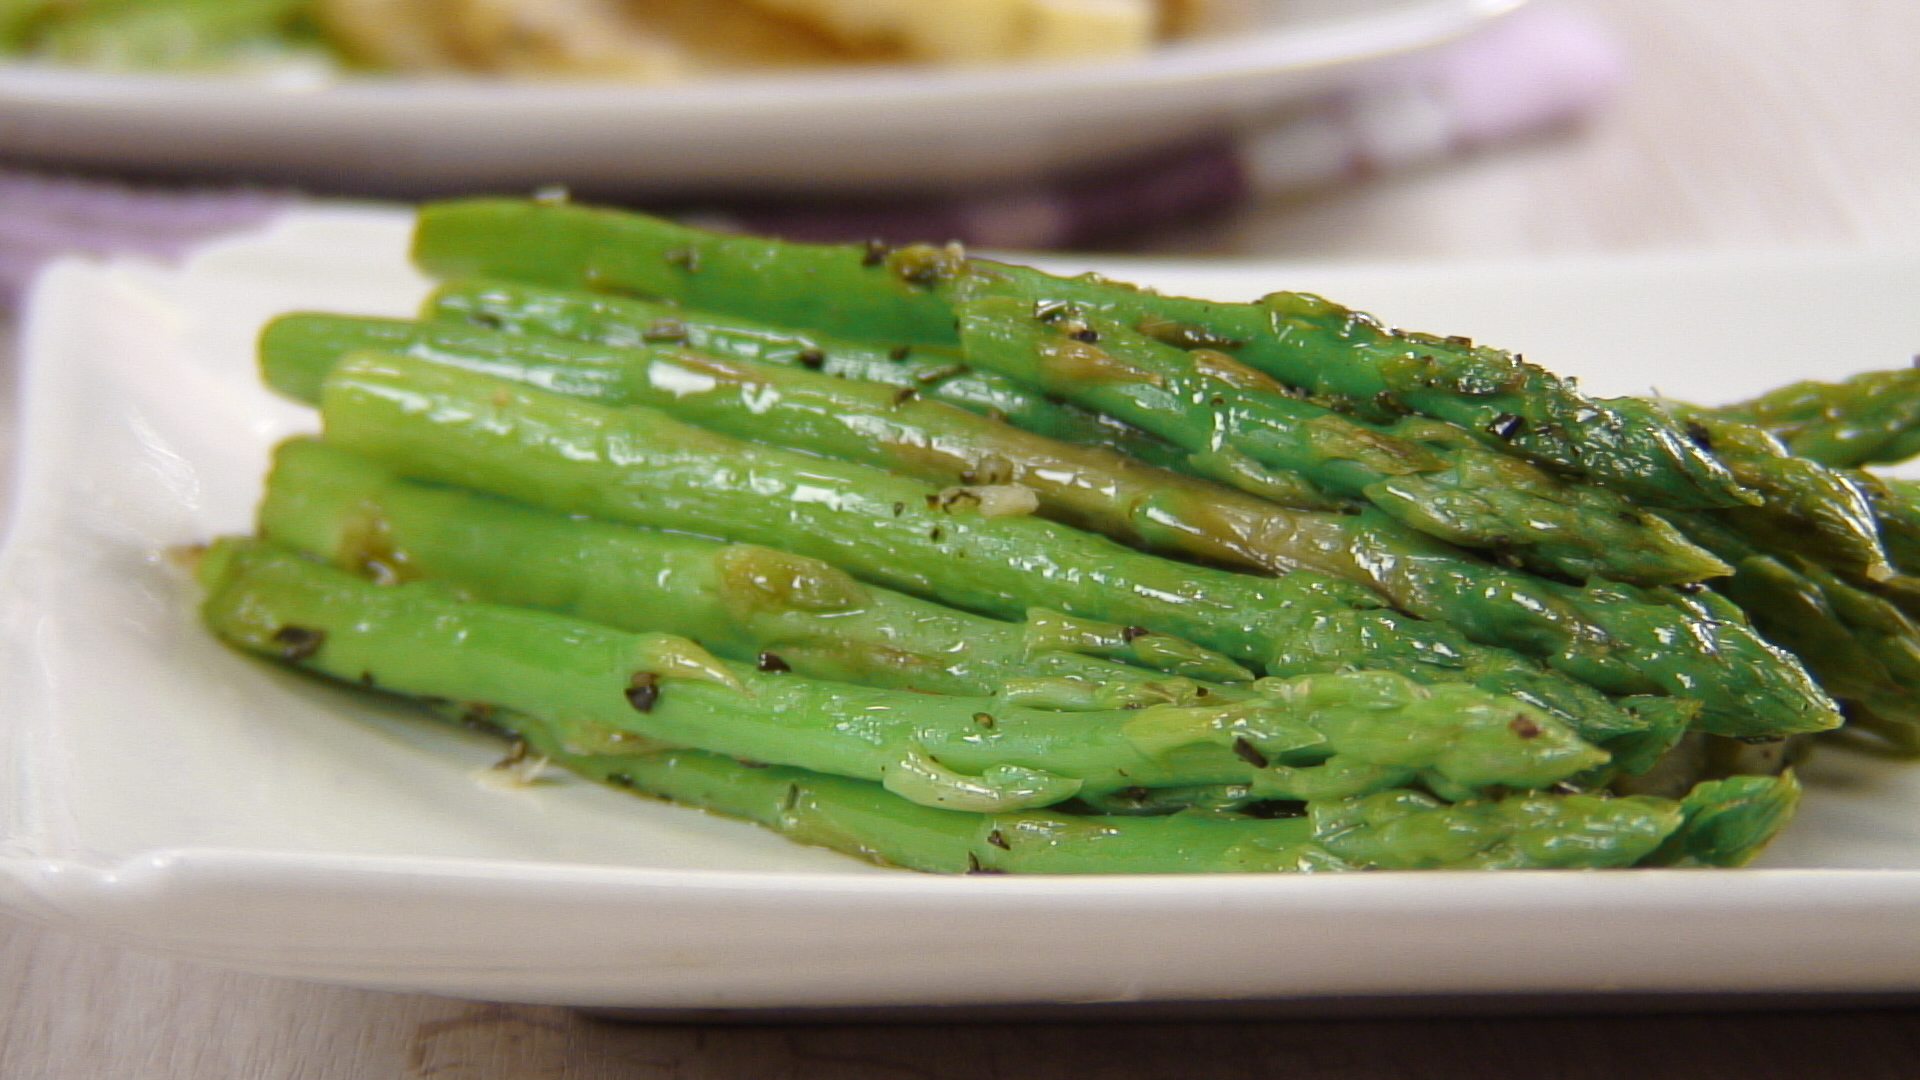 Sauted Asparagus with Rosemary and Garlic